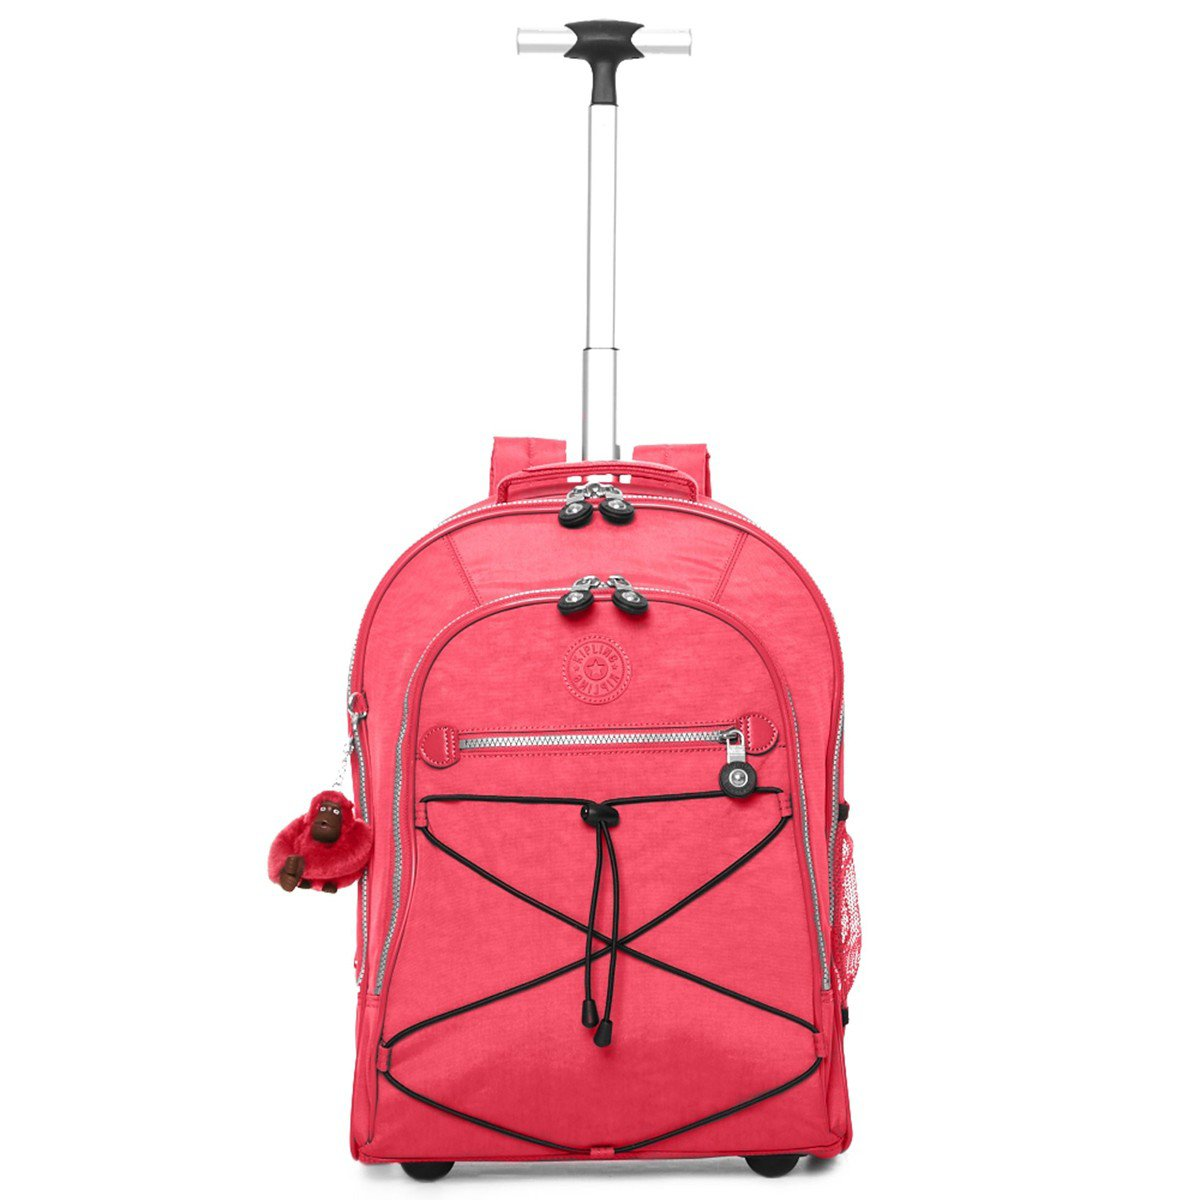 Cheap Rolling Backpacks emb9dpzp